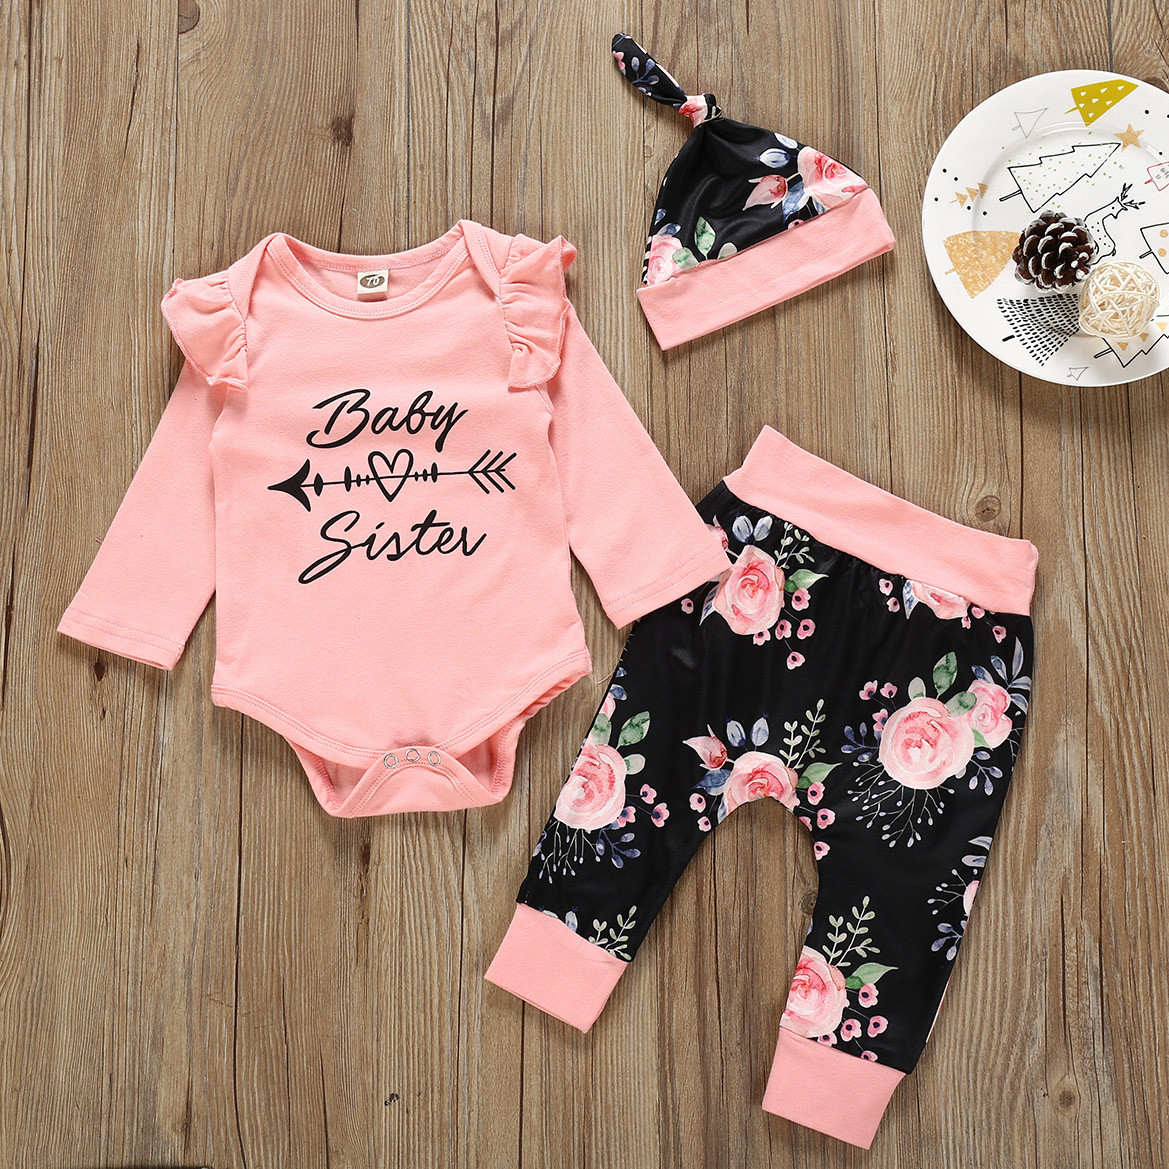 Infant Baby Toddler Girls Christmas Clothes Outfits Set 0-4 Years Old 2Pcs Kids Xmas Ruched Tops T-Shirt Pants